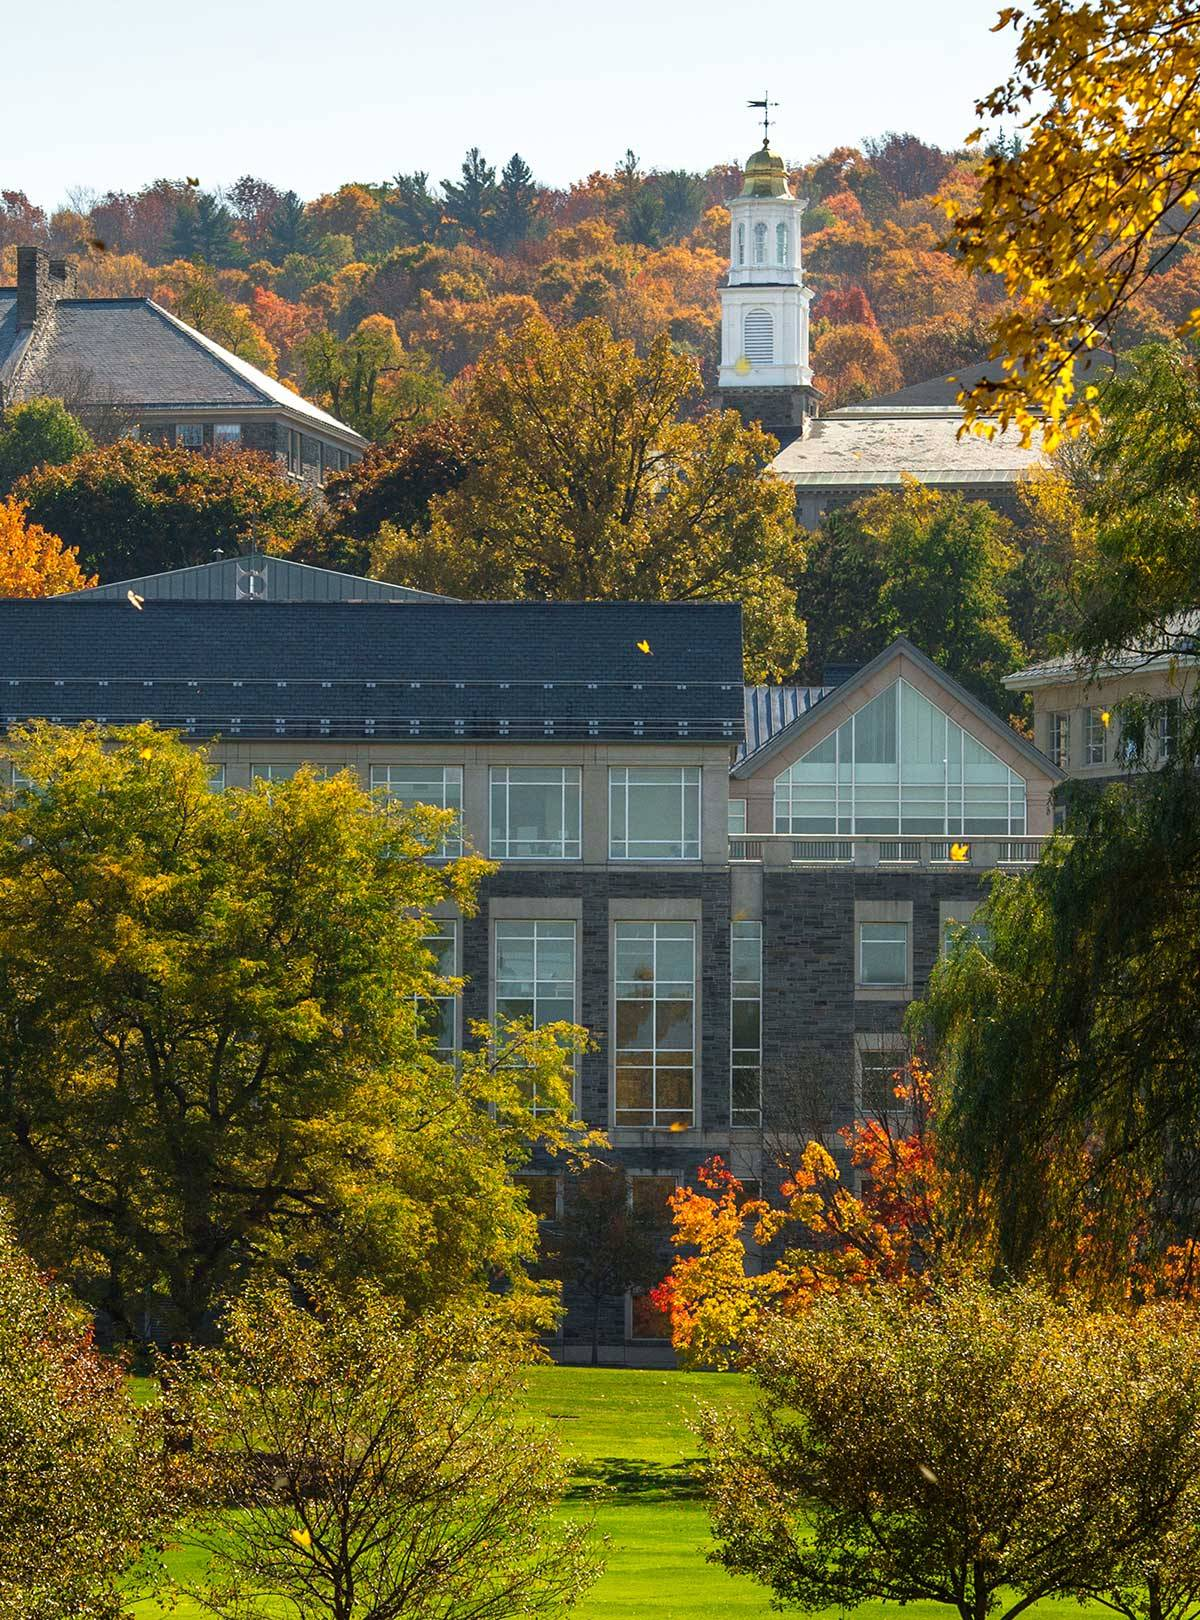 Memorial Chapel visible over Case library amidst fall foliage